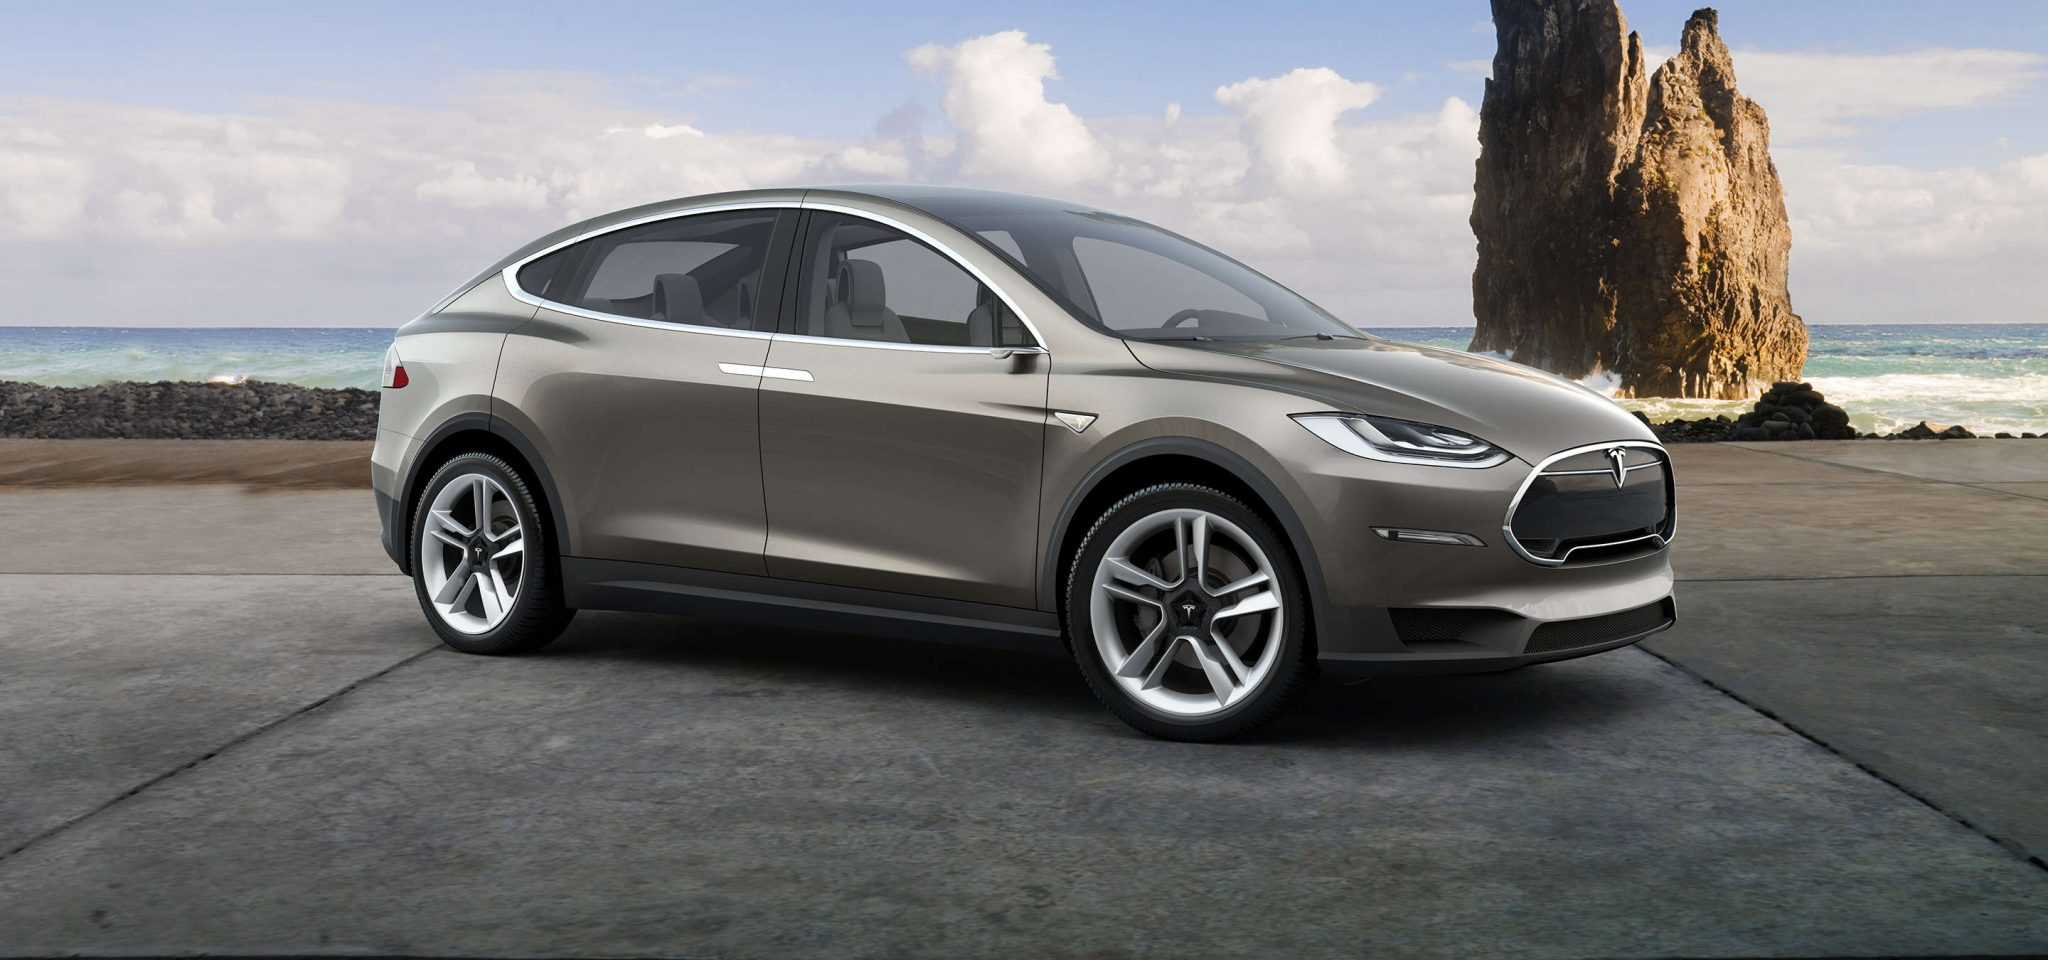 Tesla Model X Signature Series Offers Abnormal Speed at Insane Price